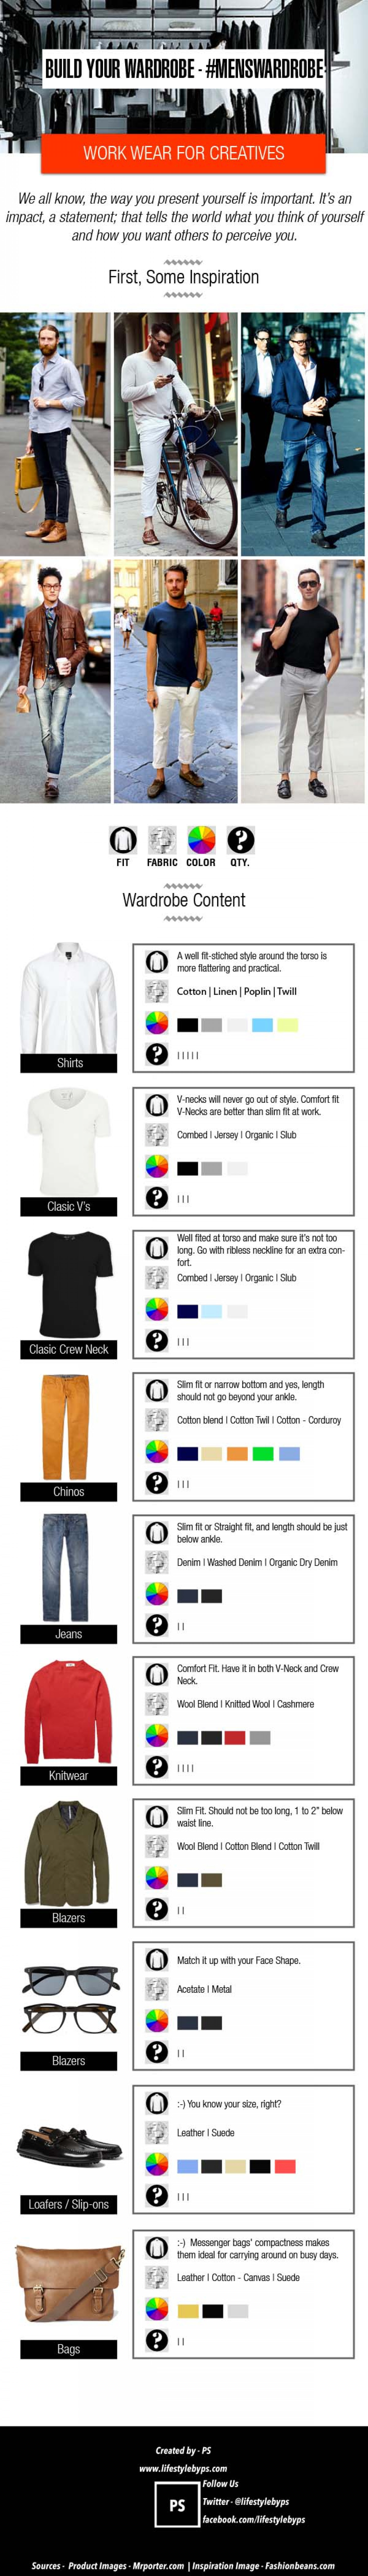 Build your wardrobe #menswardrobe  Infographic